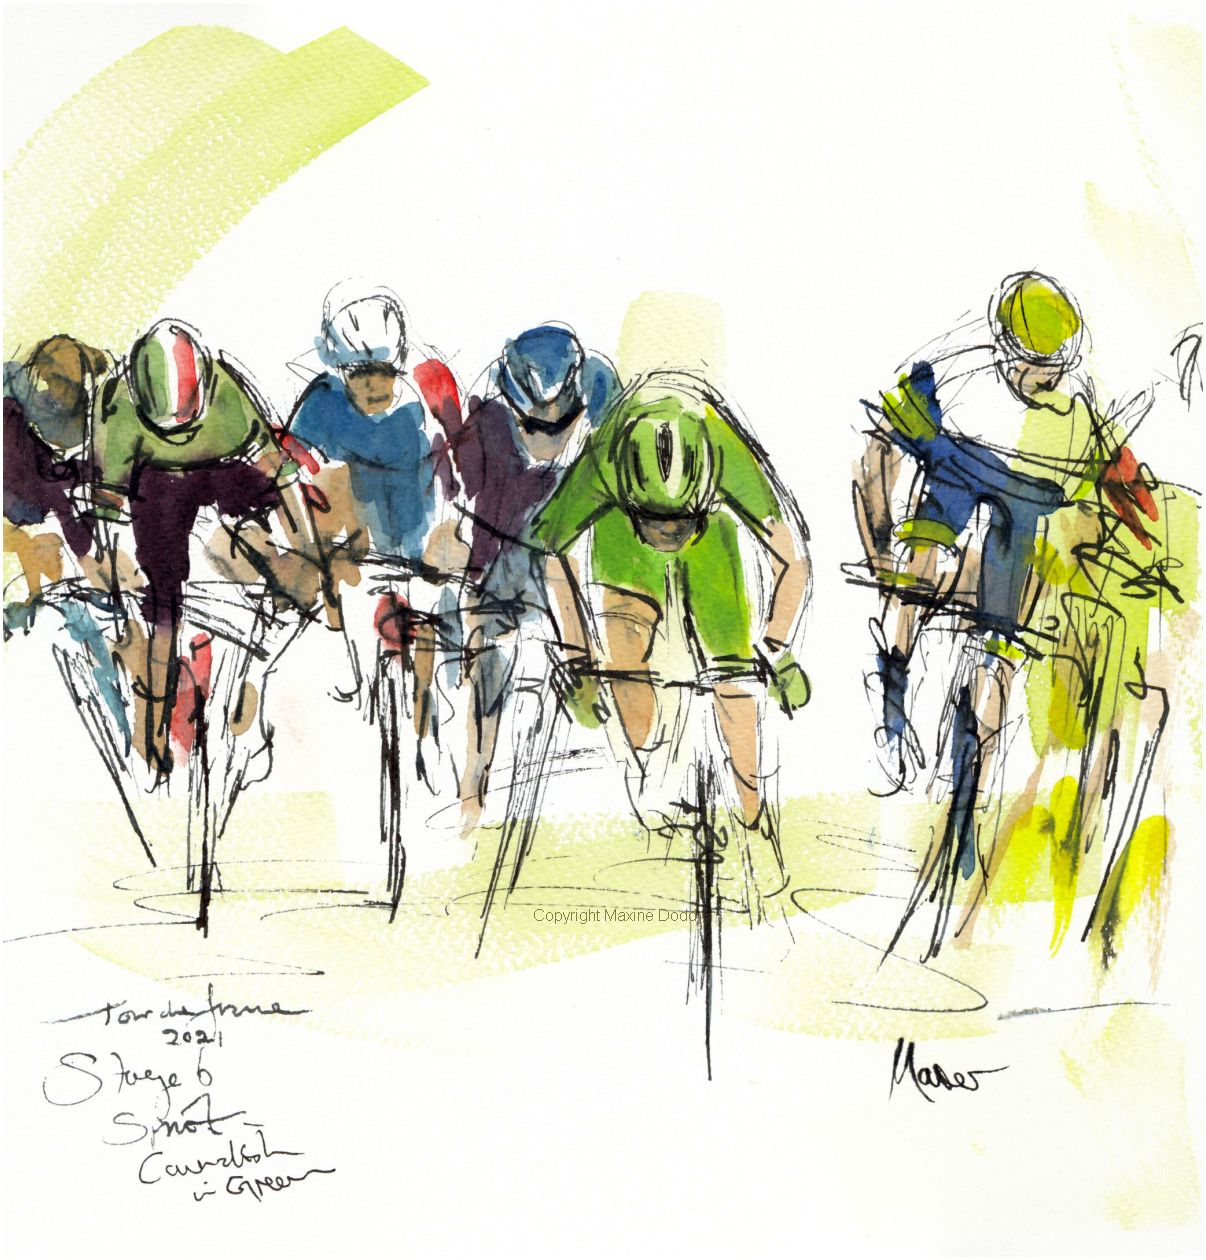 Tour de France 2021 - Stage 6, Cavendish in Green! Original watercolour painting Maxine Dodd